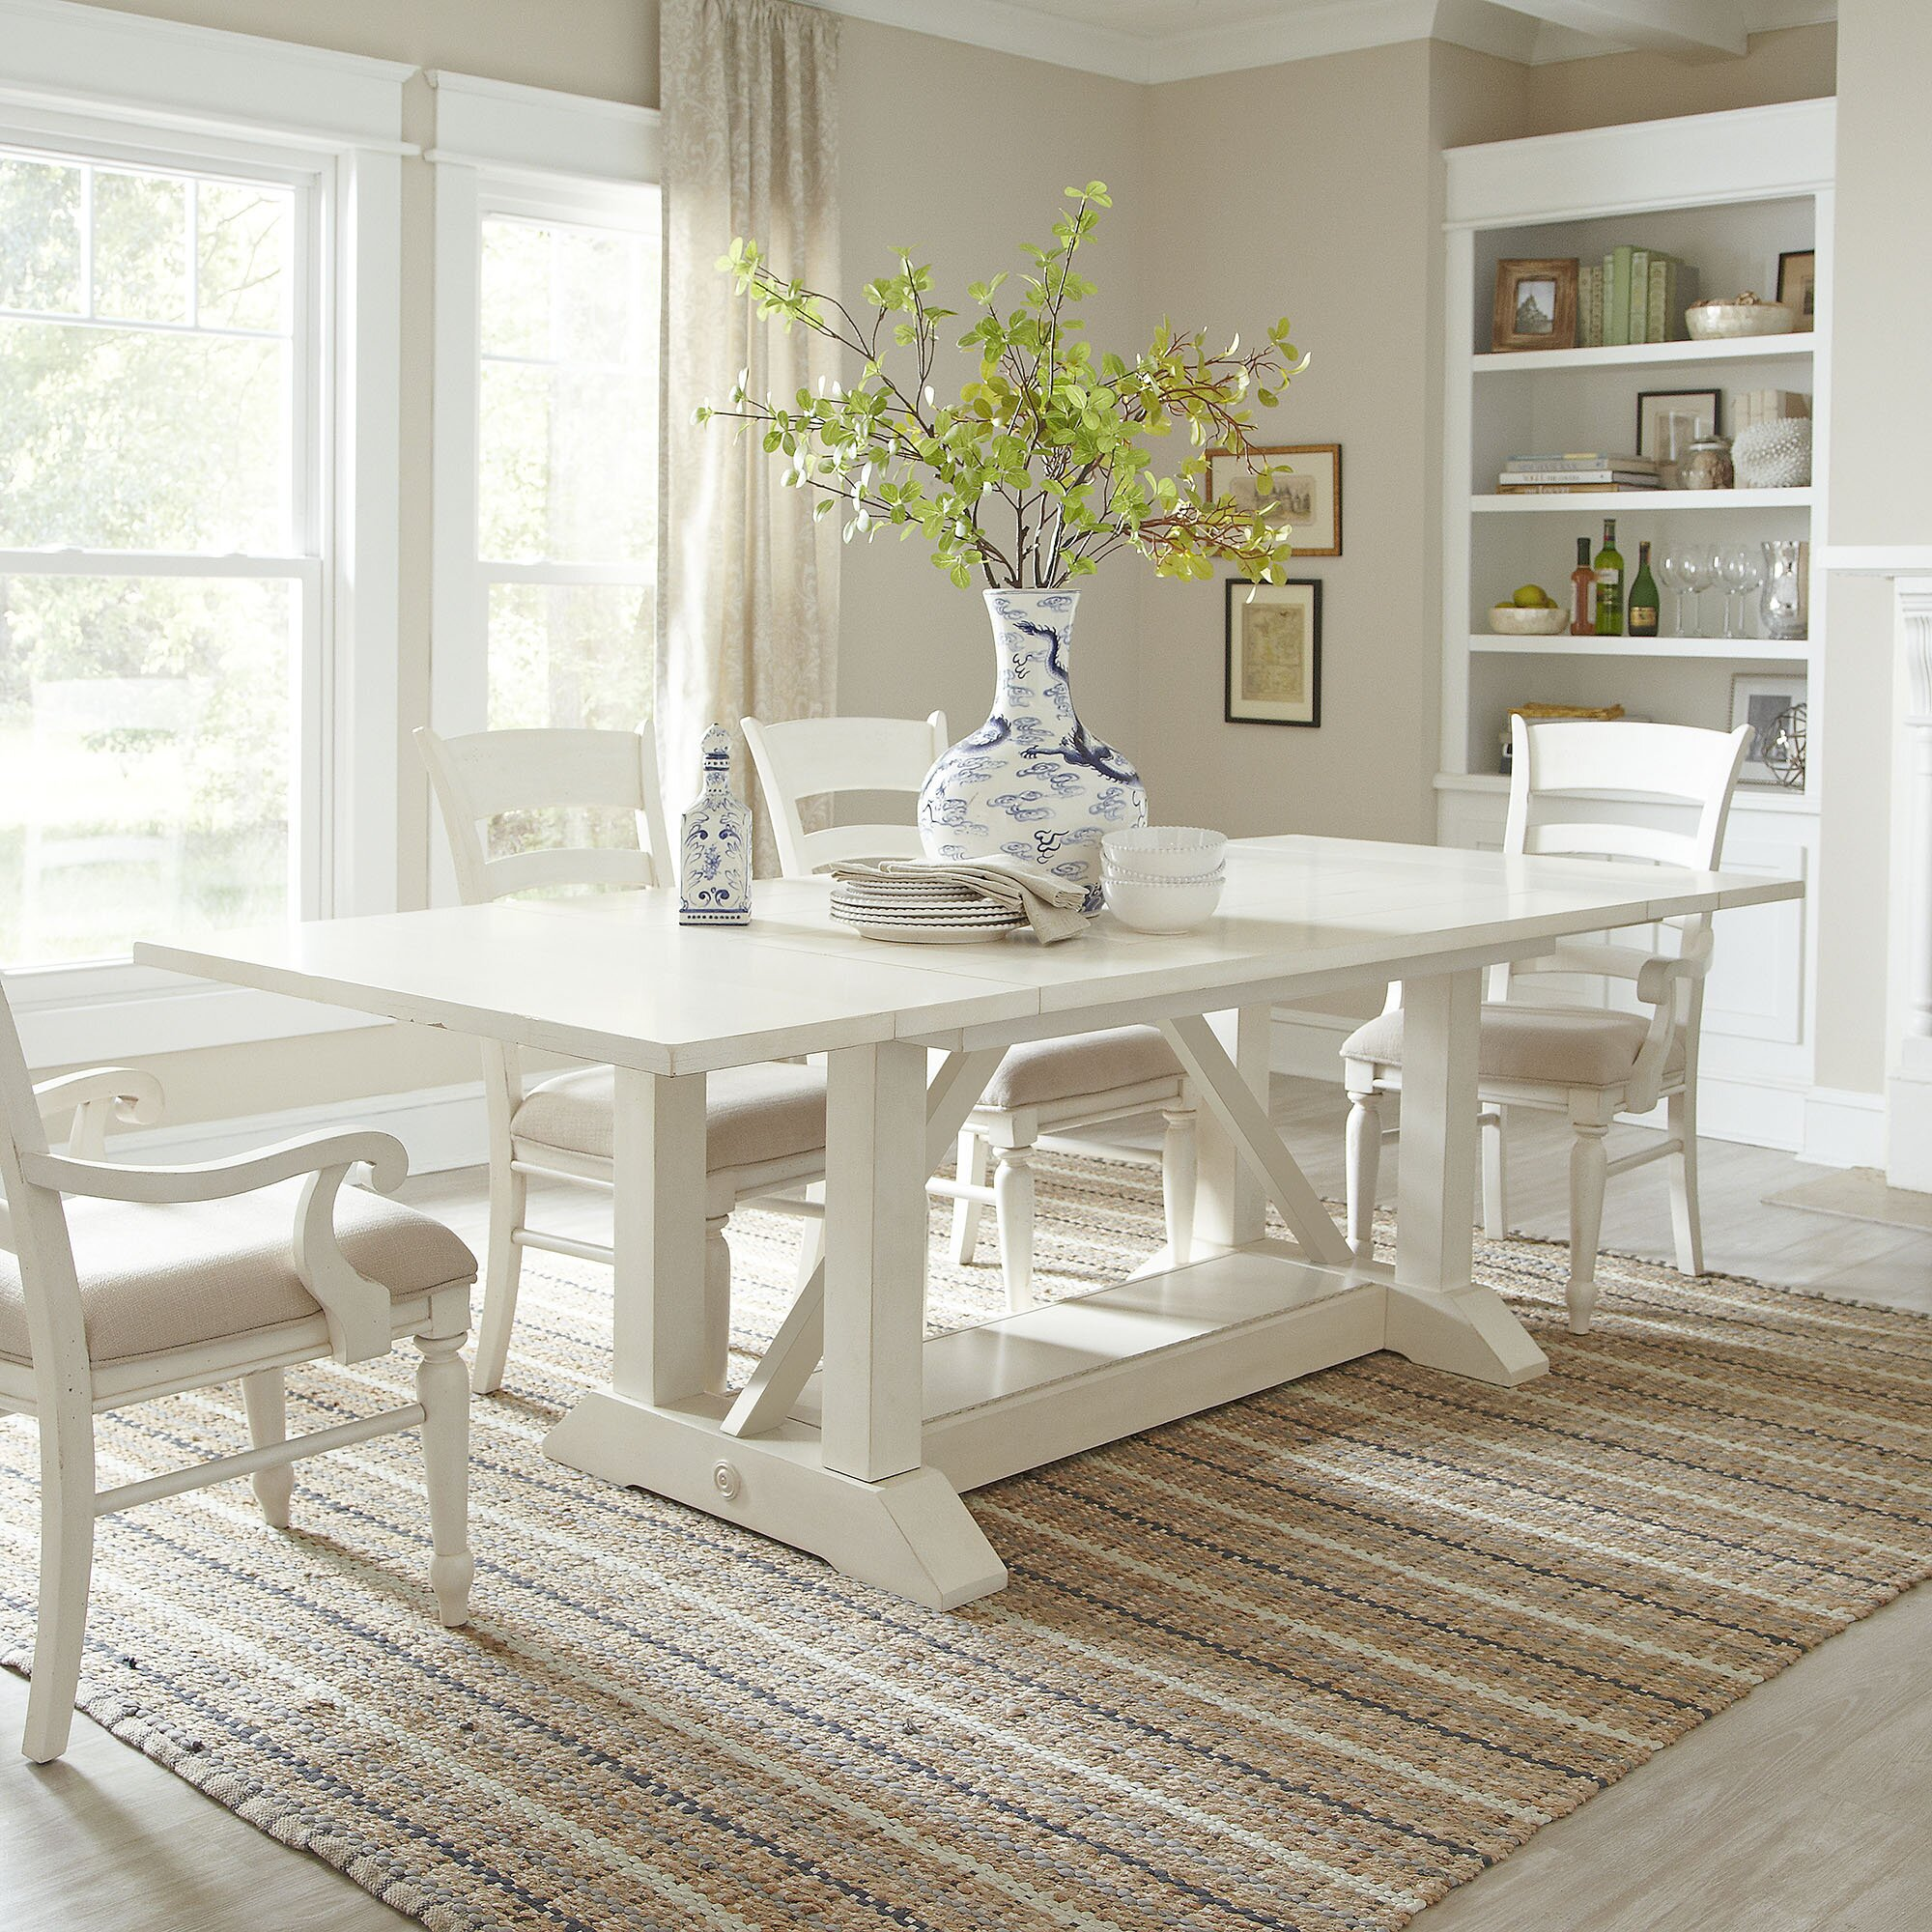 Birch lane lisbon extending dining table reviews wayfair - Birch kitchen table ...